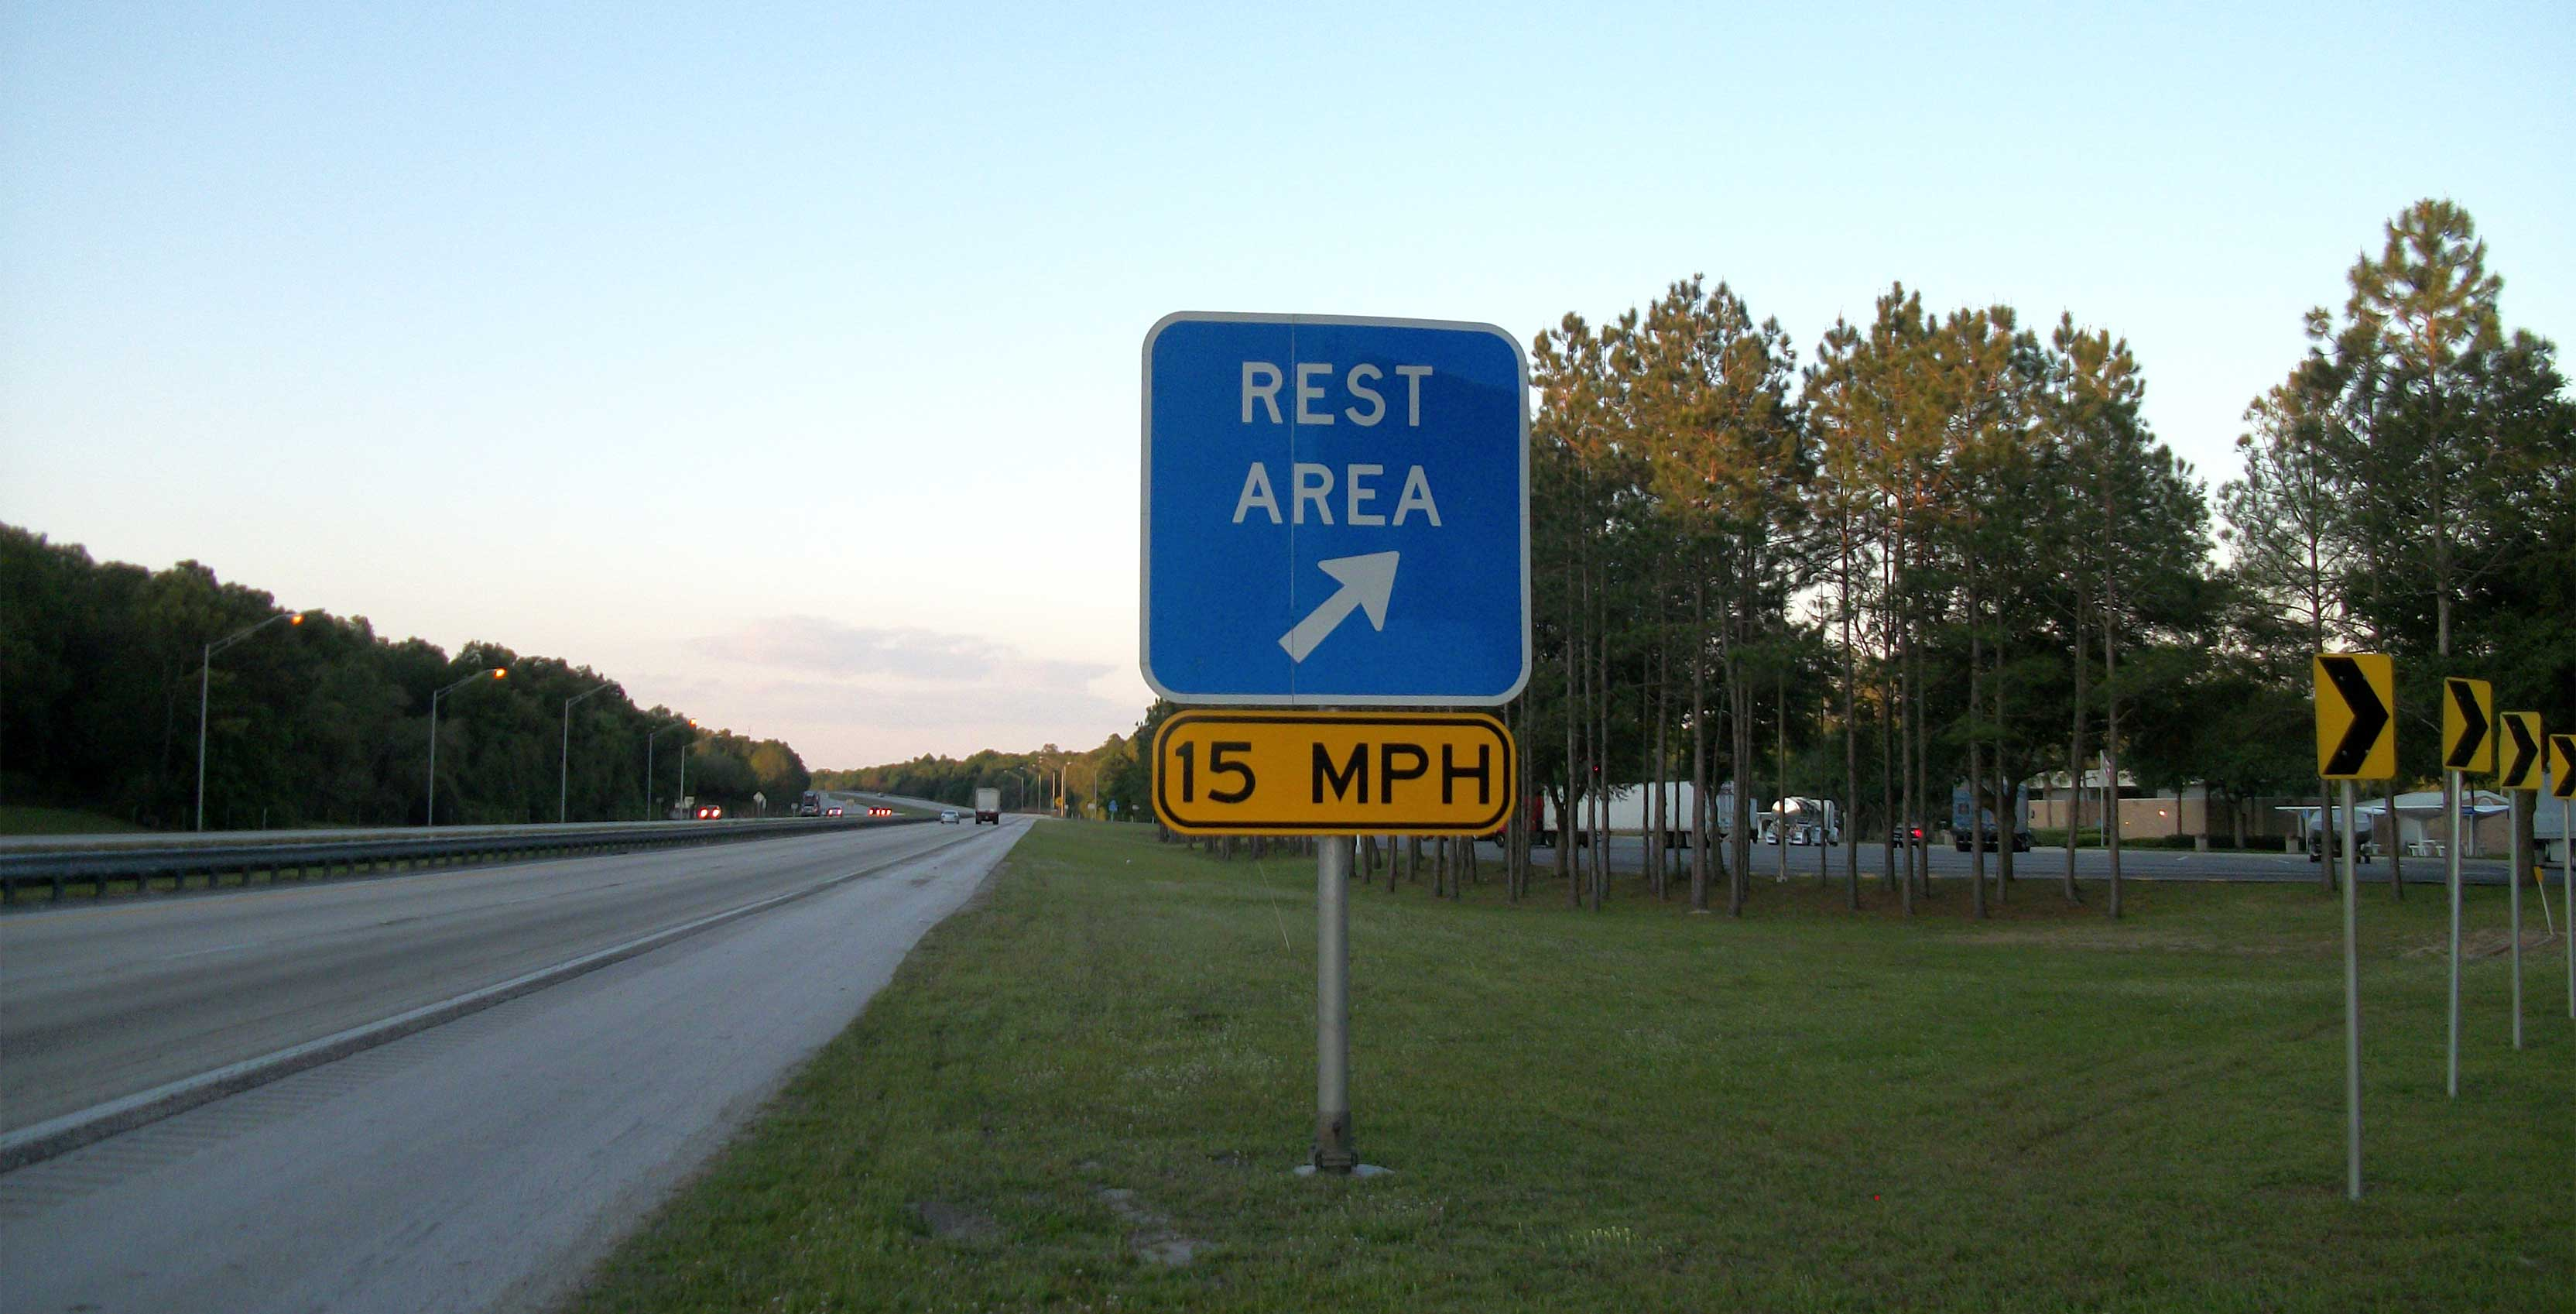 highway rest area